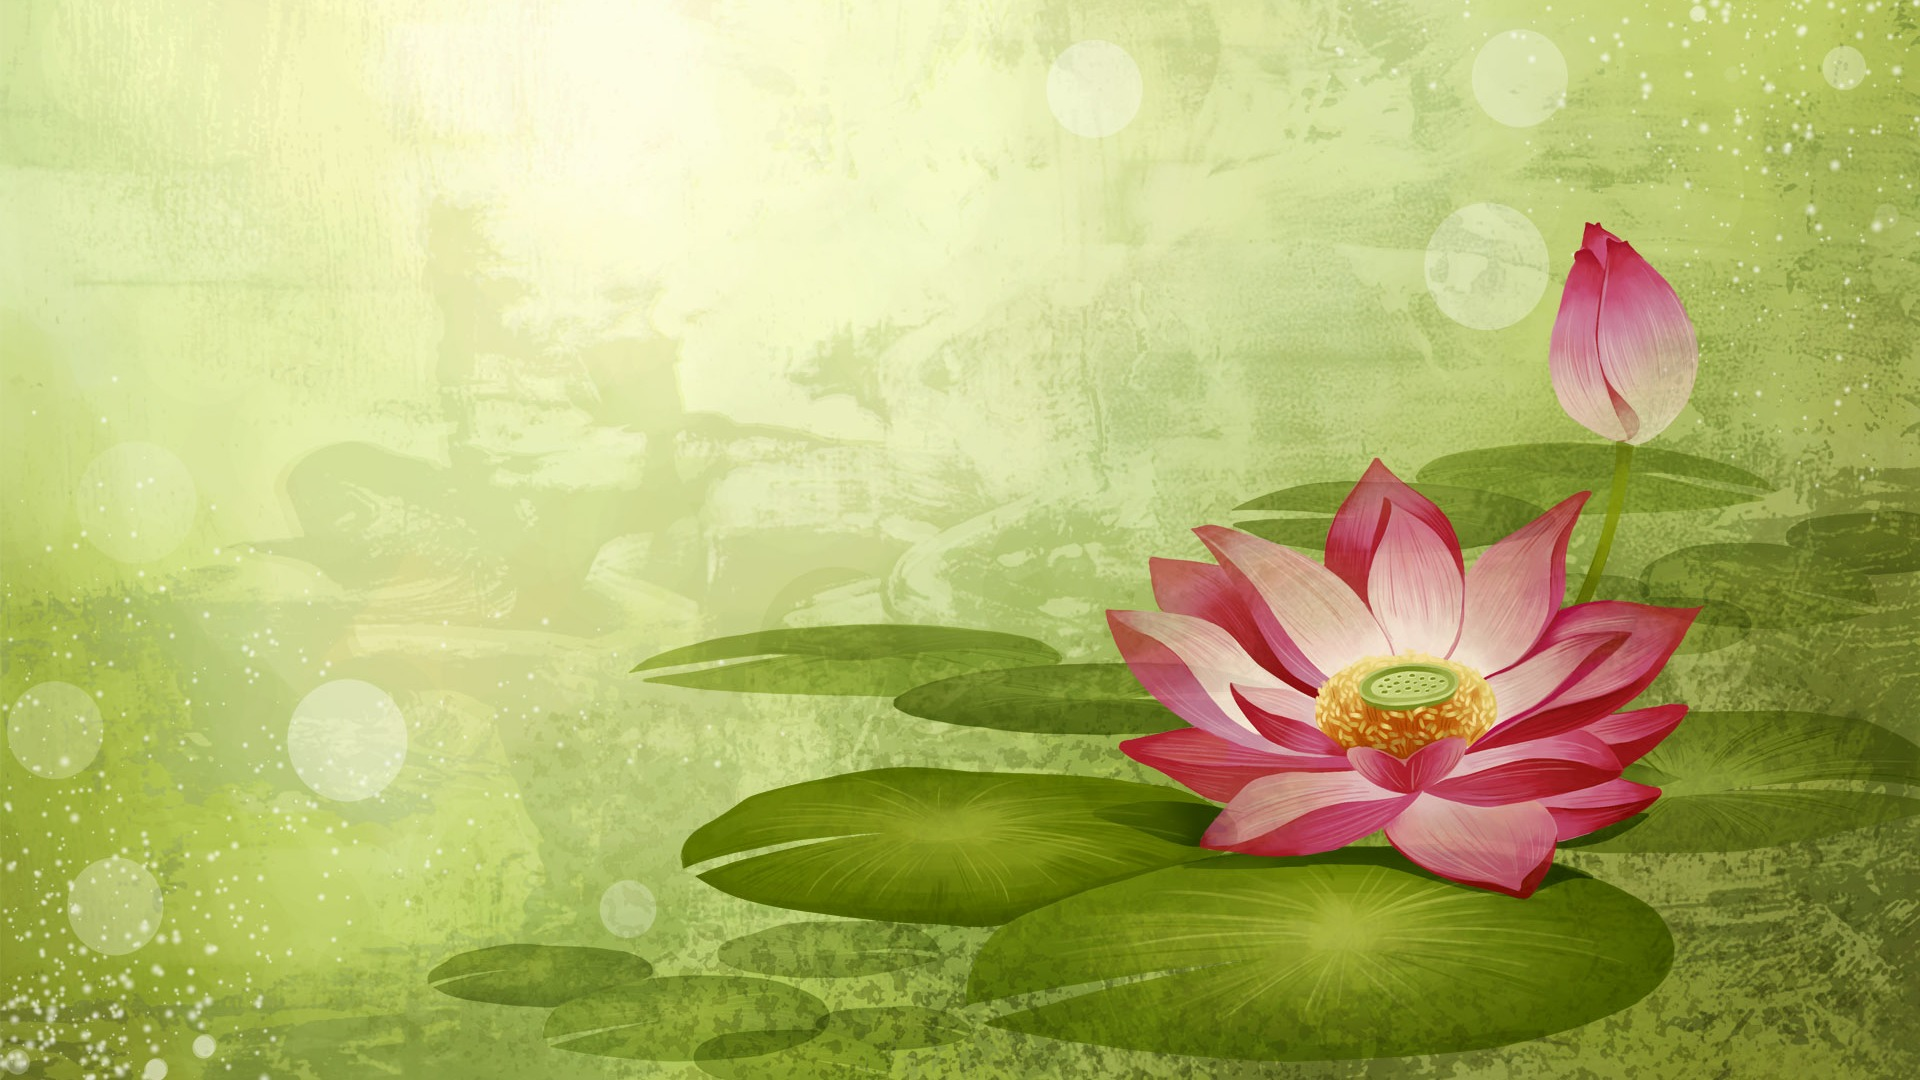 Wallpaper Lotus Flower Design